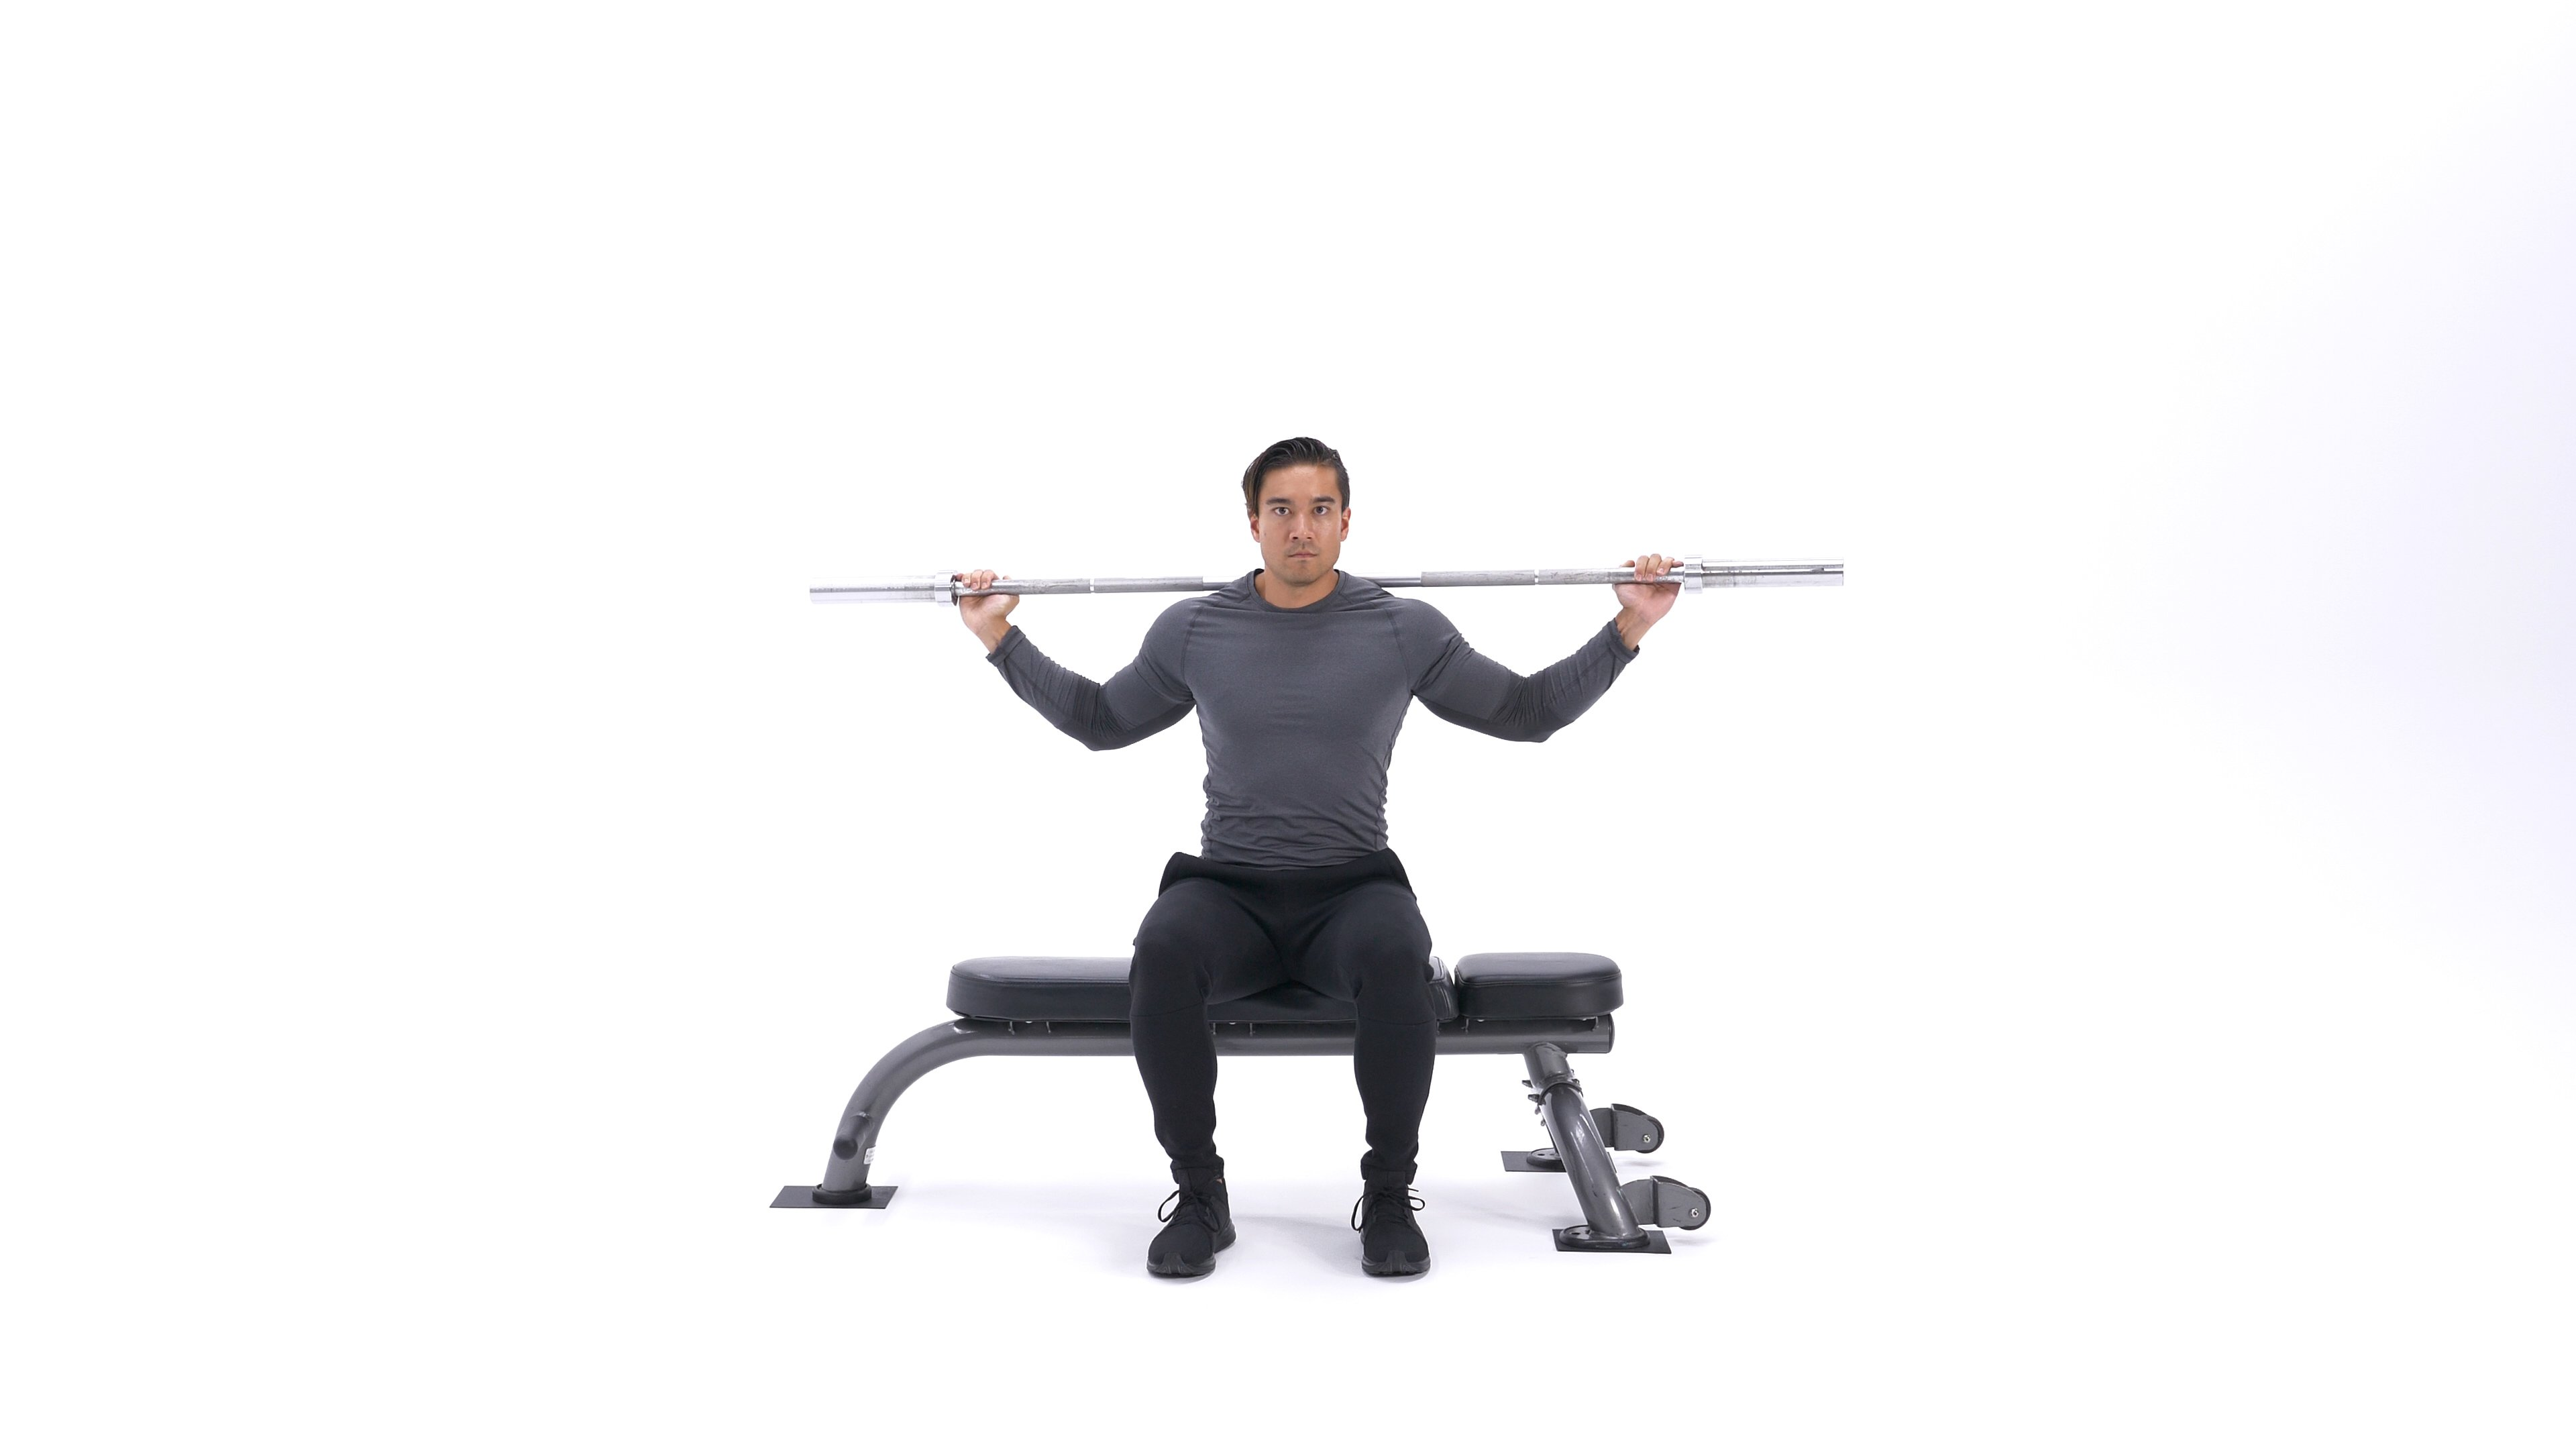 Seated bar twist image